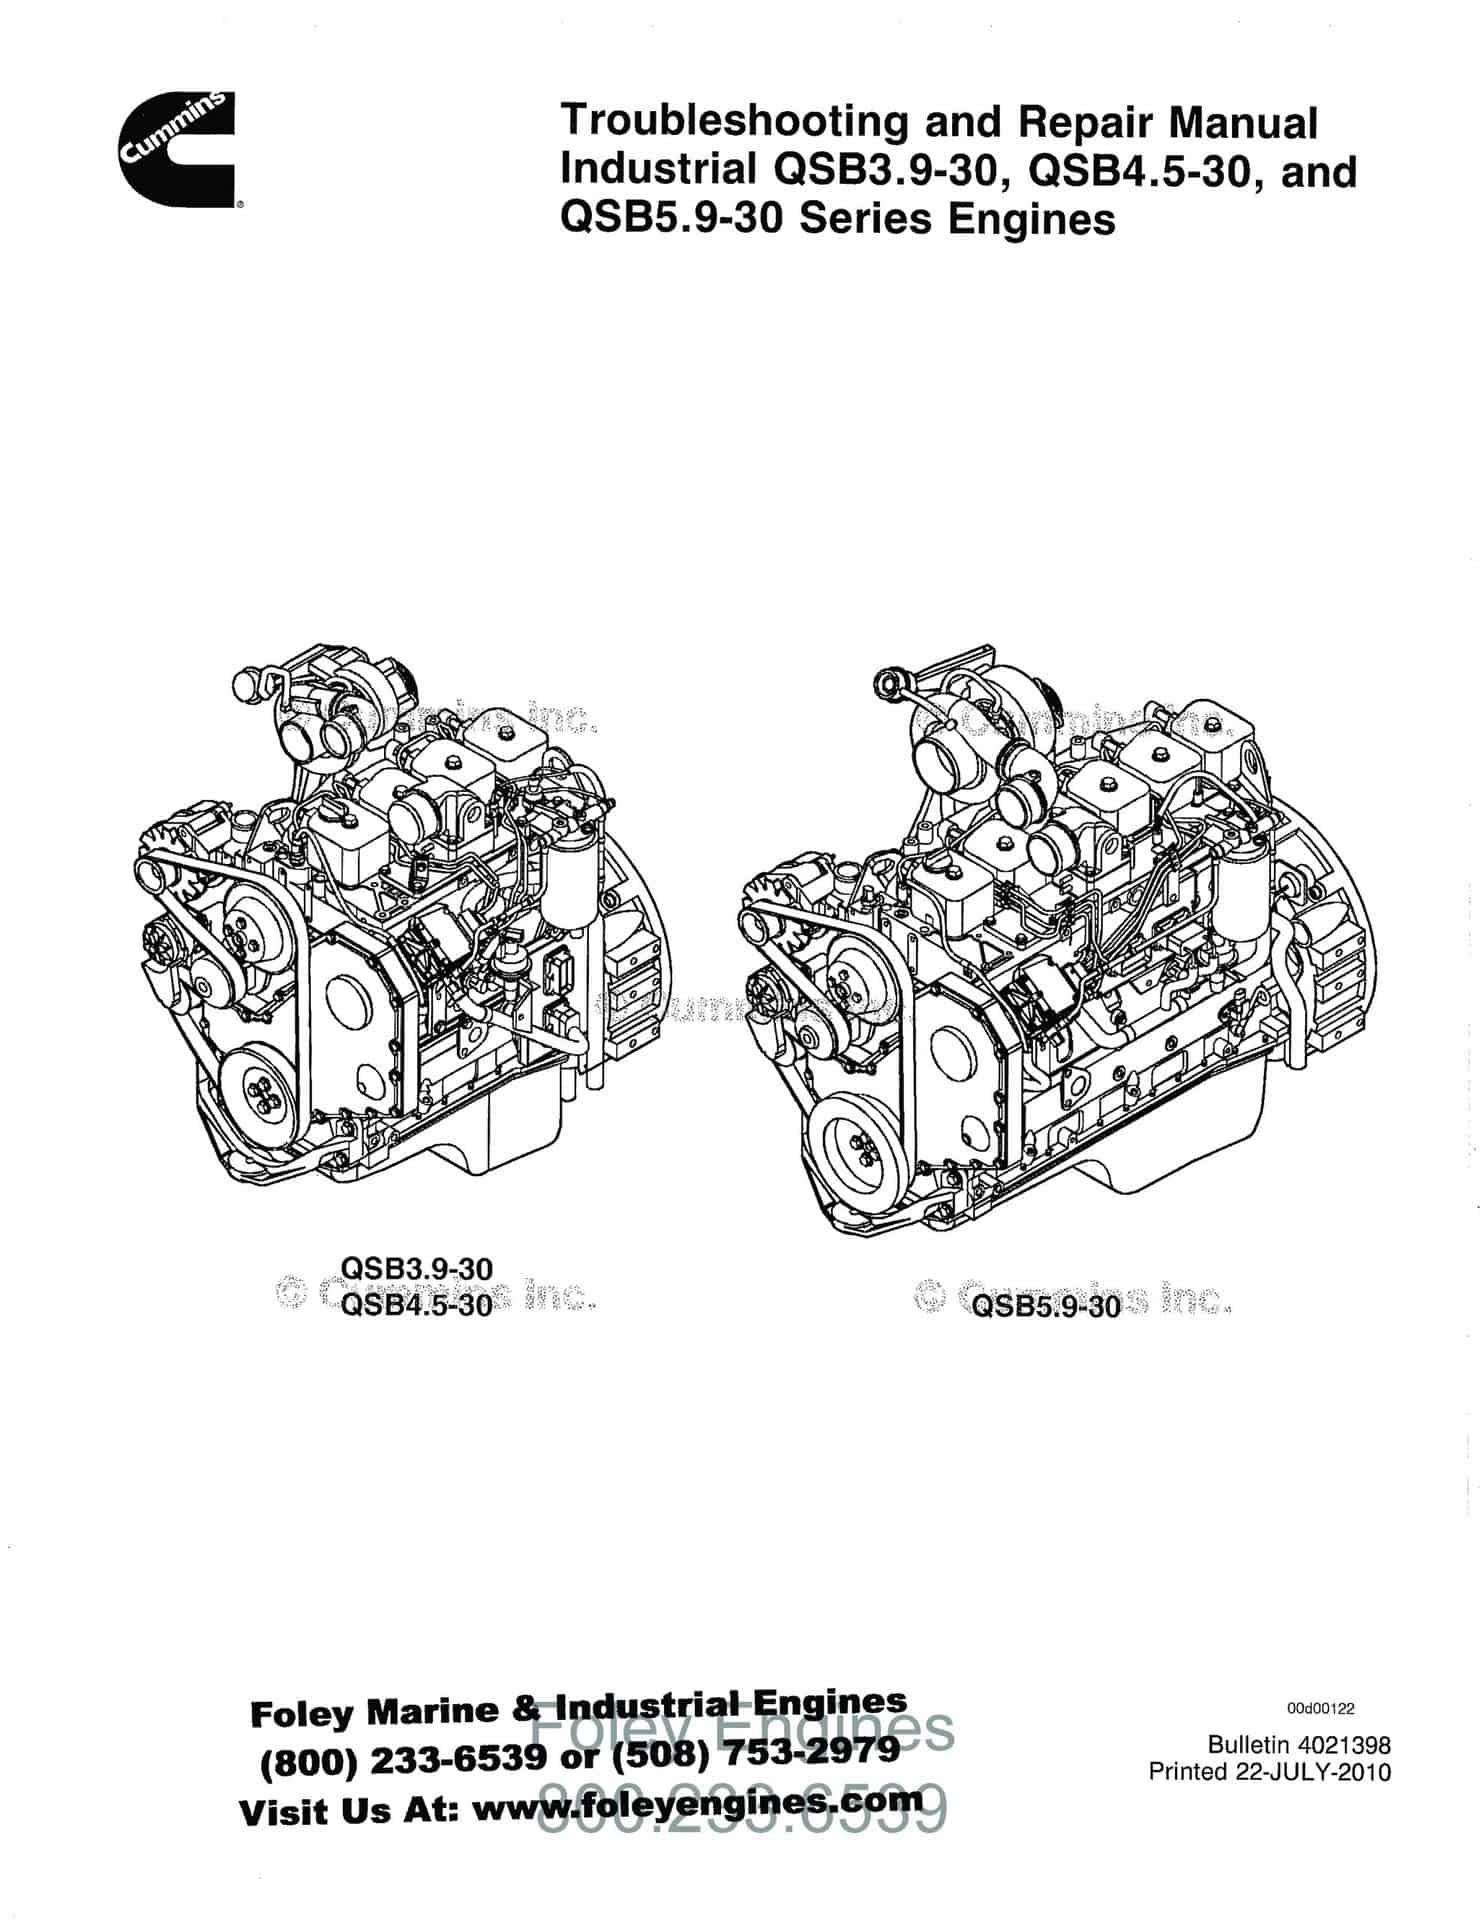 Cummins QSB3.9-30 / QSB4.5-30 / QSB5.9-30 Manual